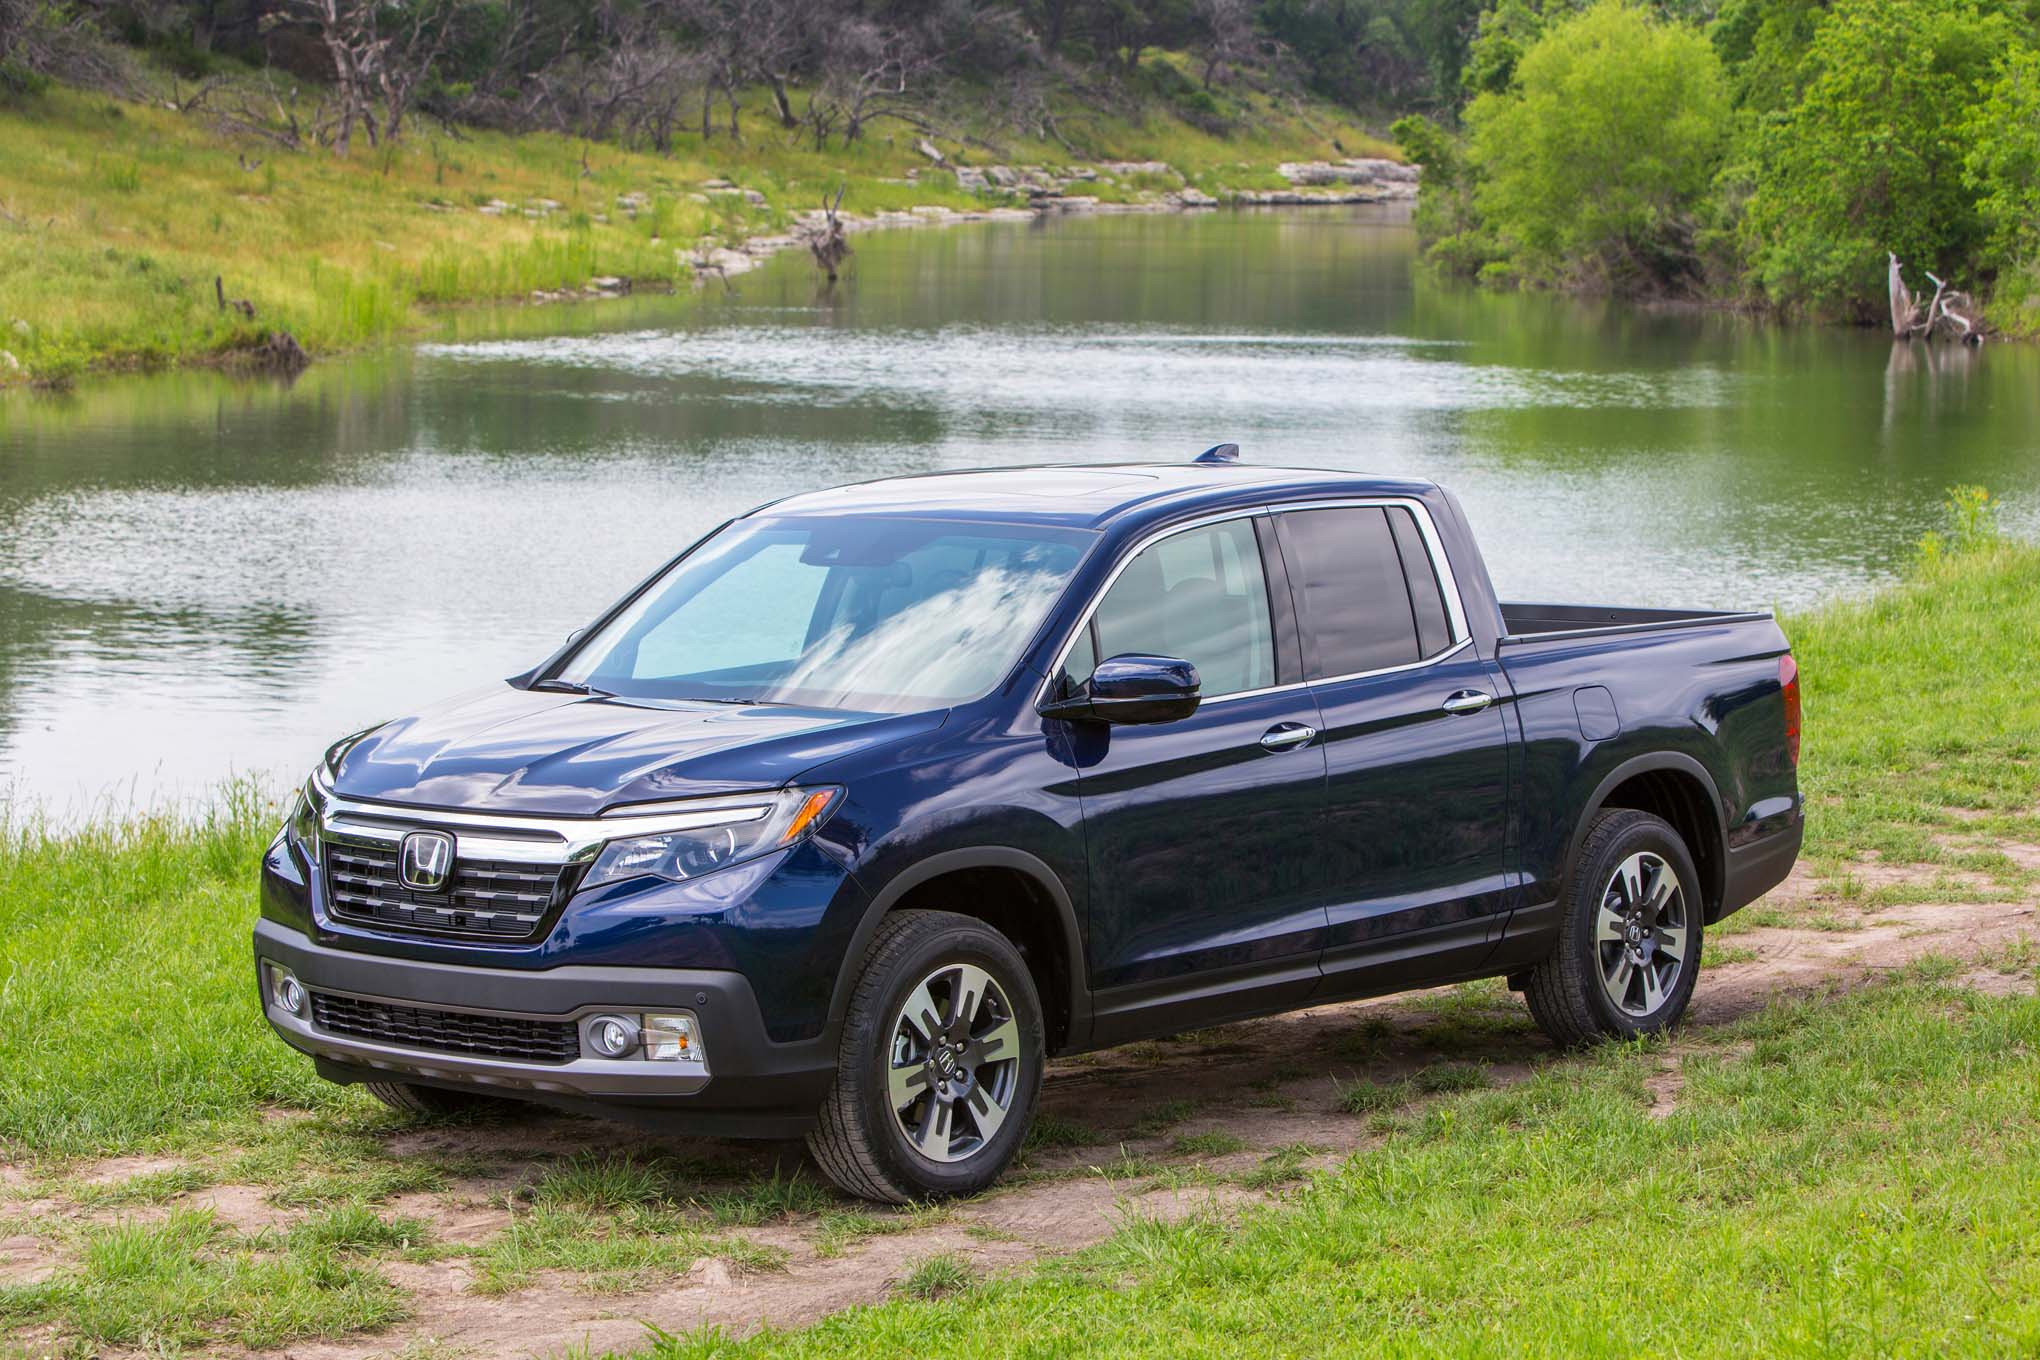 2017 honda ridgeline first drive review car news and for 2017 honda ridgeline configurations